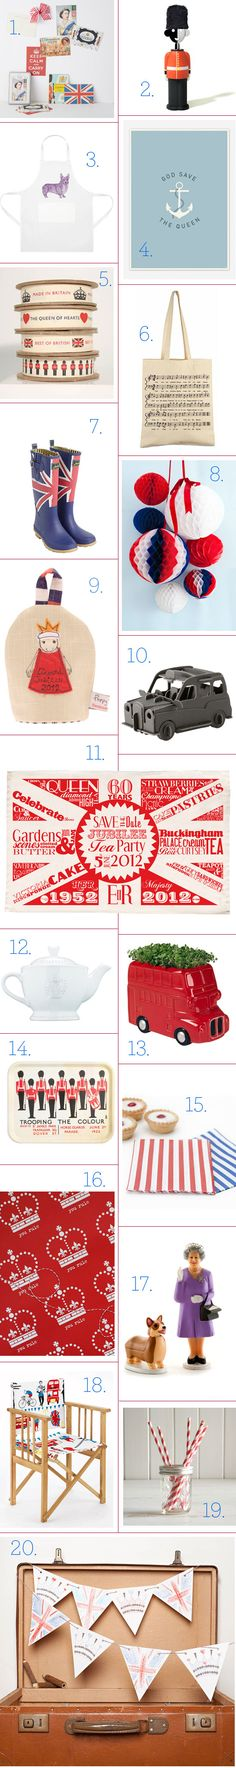 #Jubilee finds by Home Shopping Spy - love the paper #craft pom poms and the mini Queen & Corgi